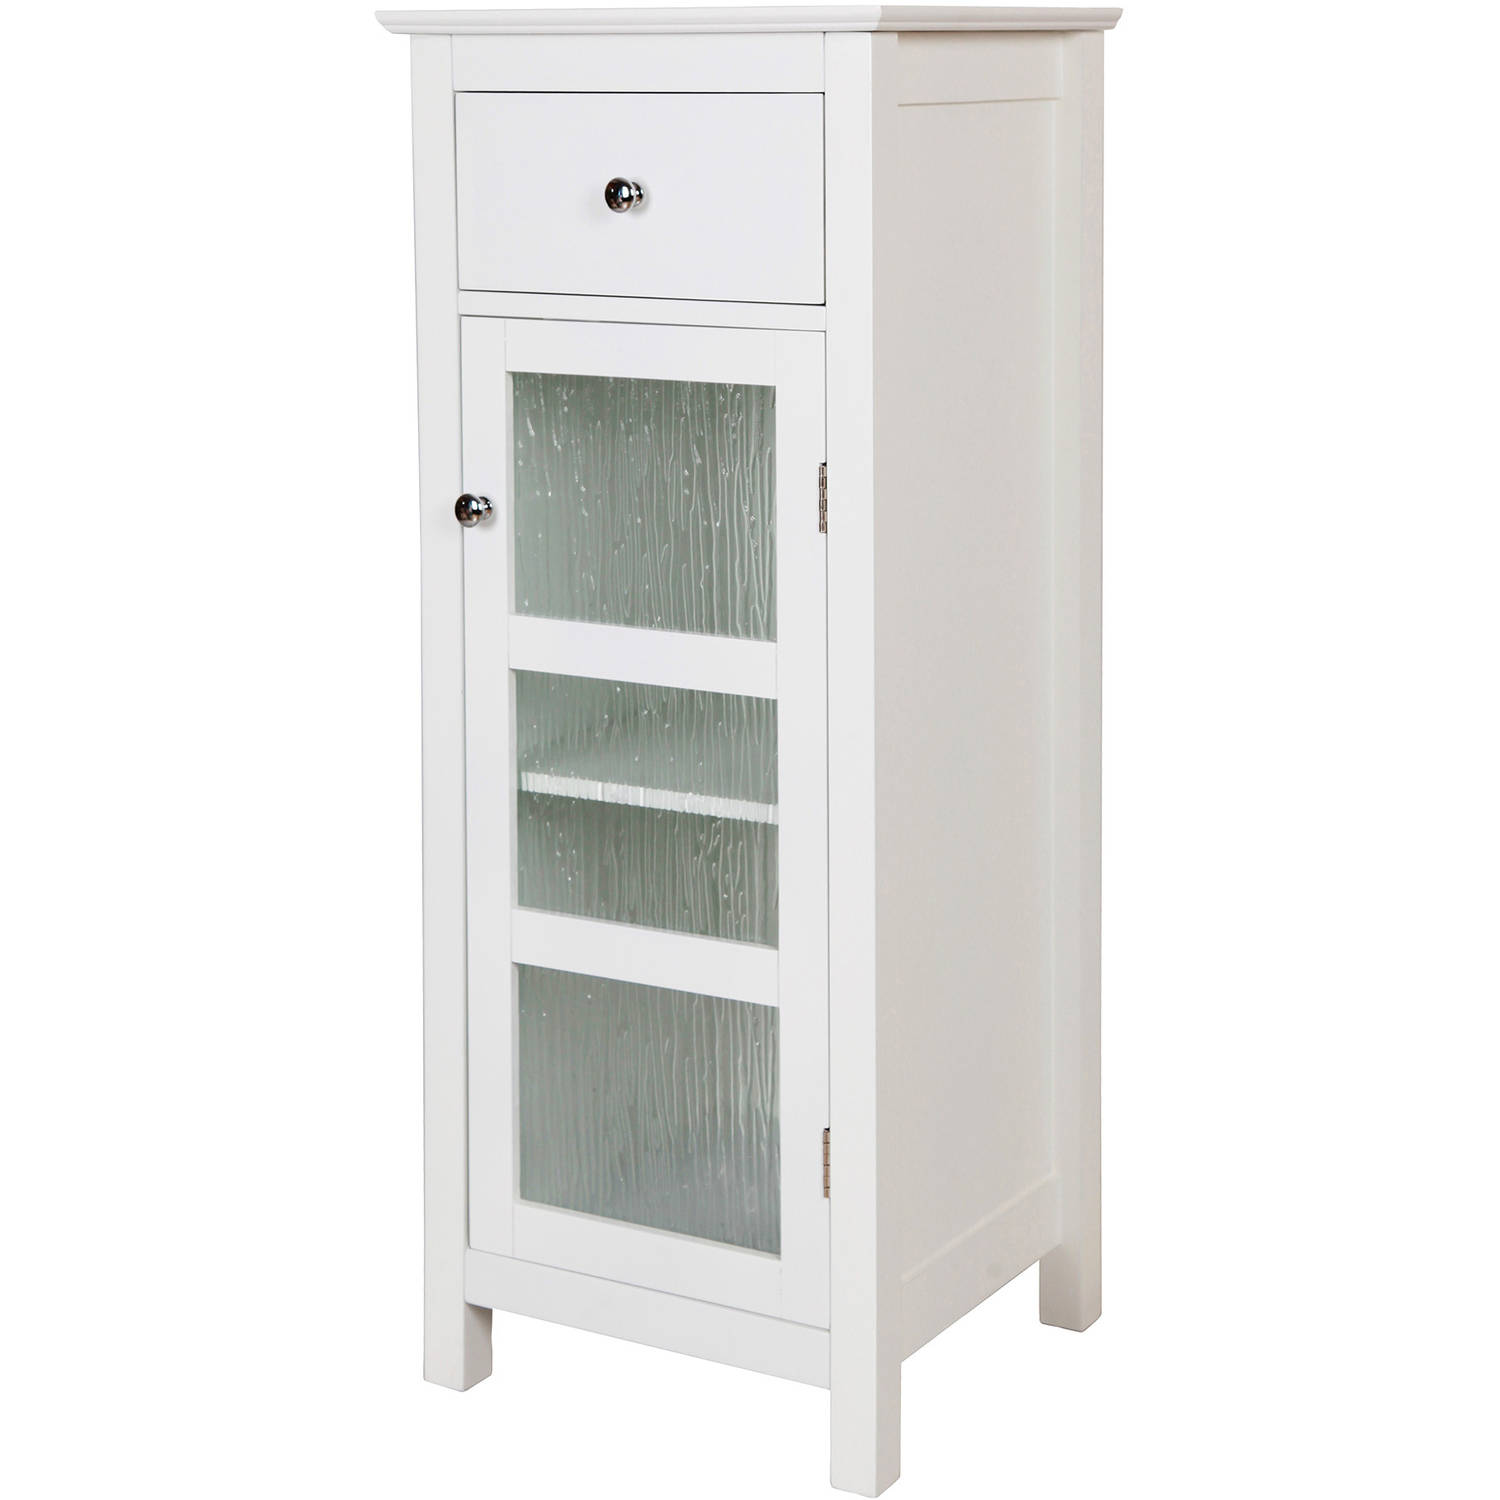 Connor Floor Cabinet with 1 Door and 1 Drawer White Walmart